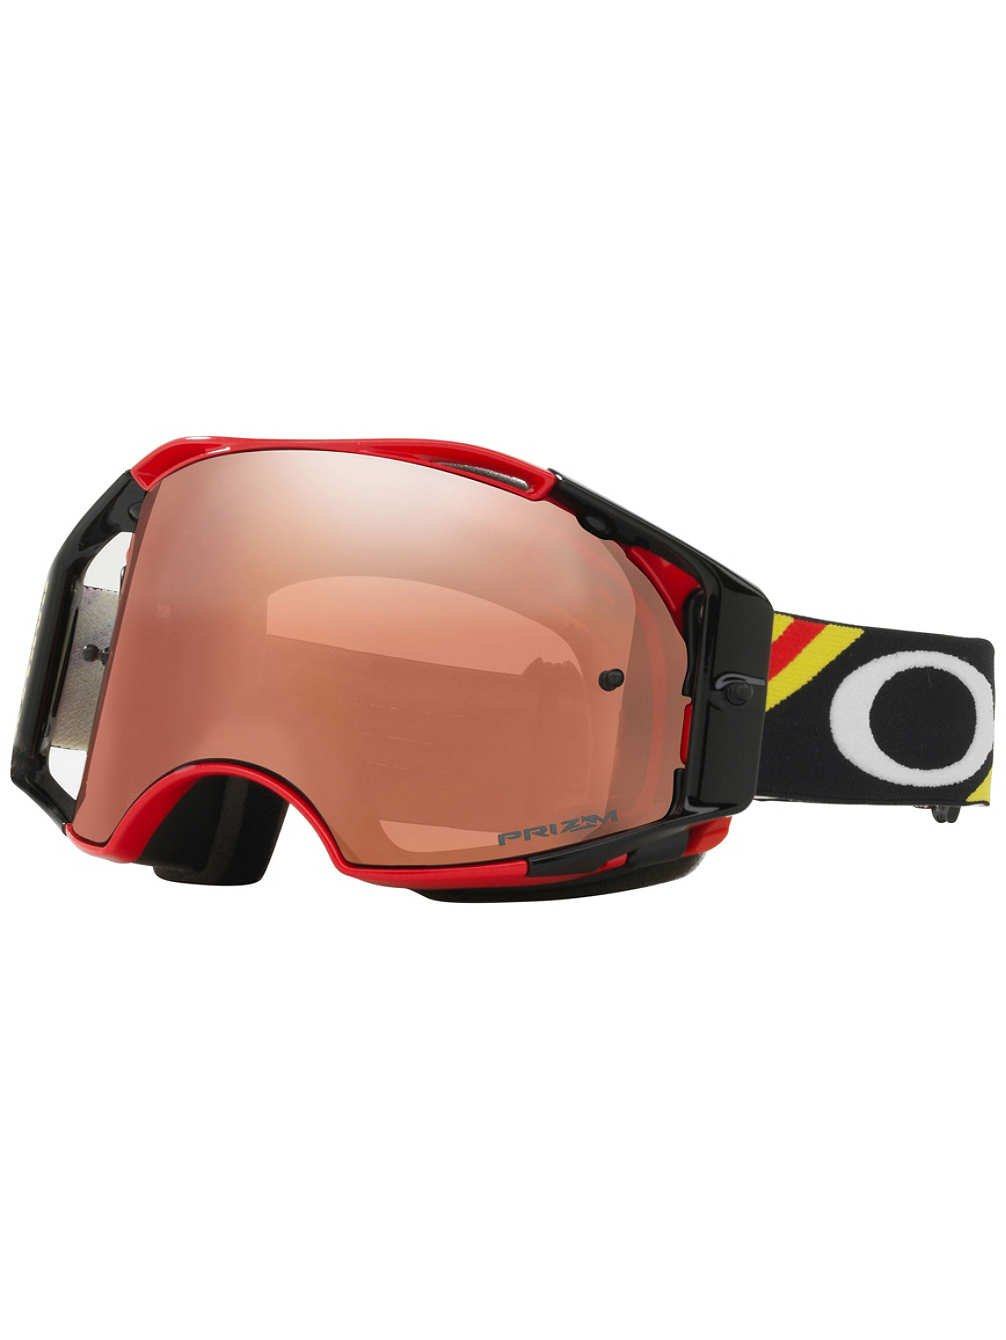 Oakley Airbrake MX Heritage Racer Adult Off-Road Motorcycle Goggles Bright Red W/Prizm Black Iridium Lens